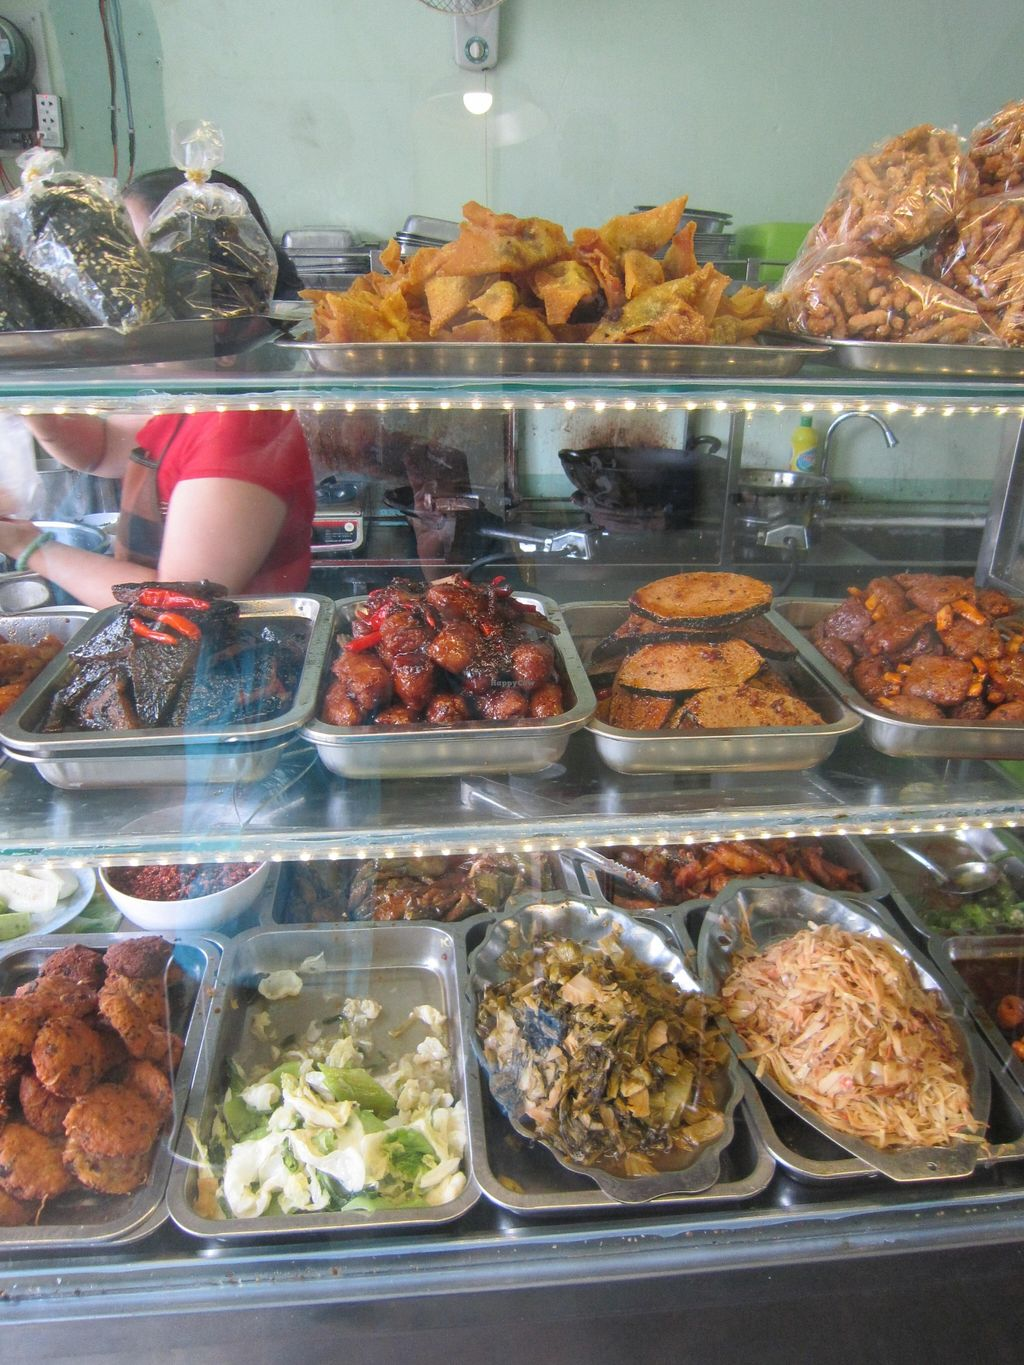 """Photo of Thanh Dam  by <a href=""""/members/profile/IanSmith"""">IanSmith</a> <br/>Some of the delicious fake meats on offer at this eatery <br/> September 24, 2015  - <a href='/contact/abuse/image/10199/118946'>Report</a>"""